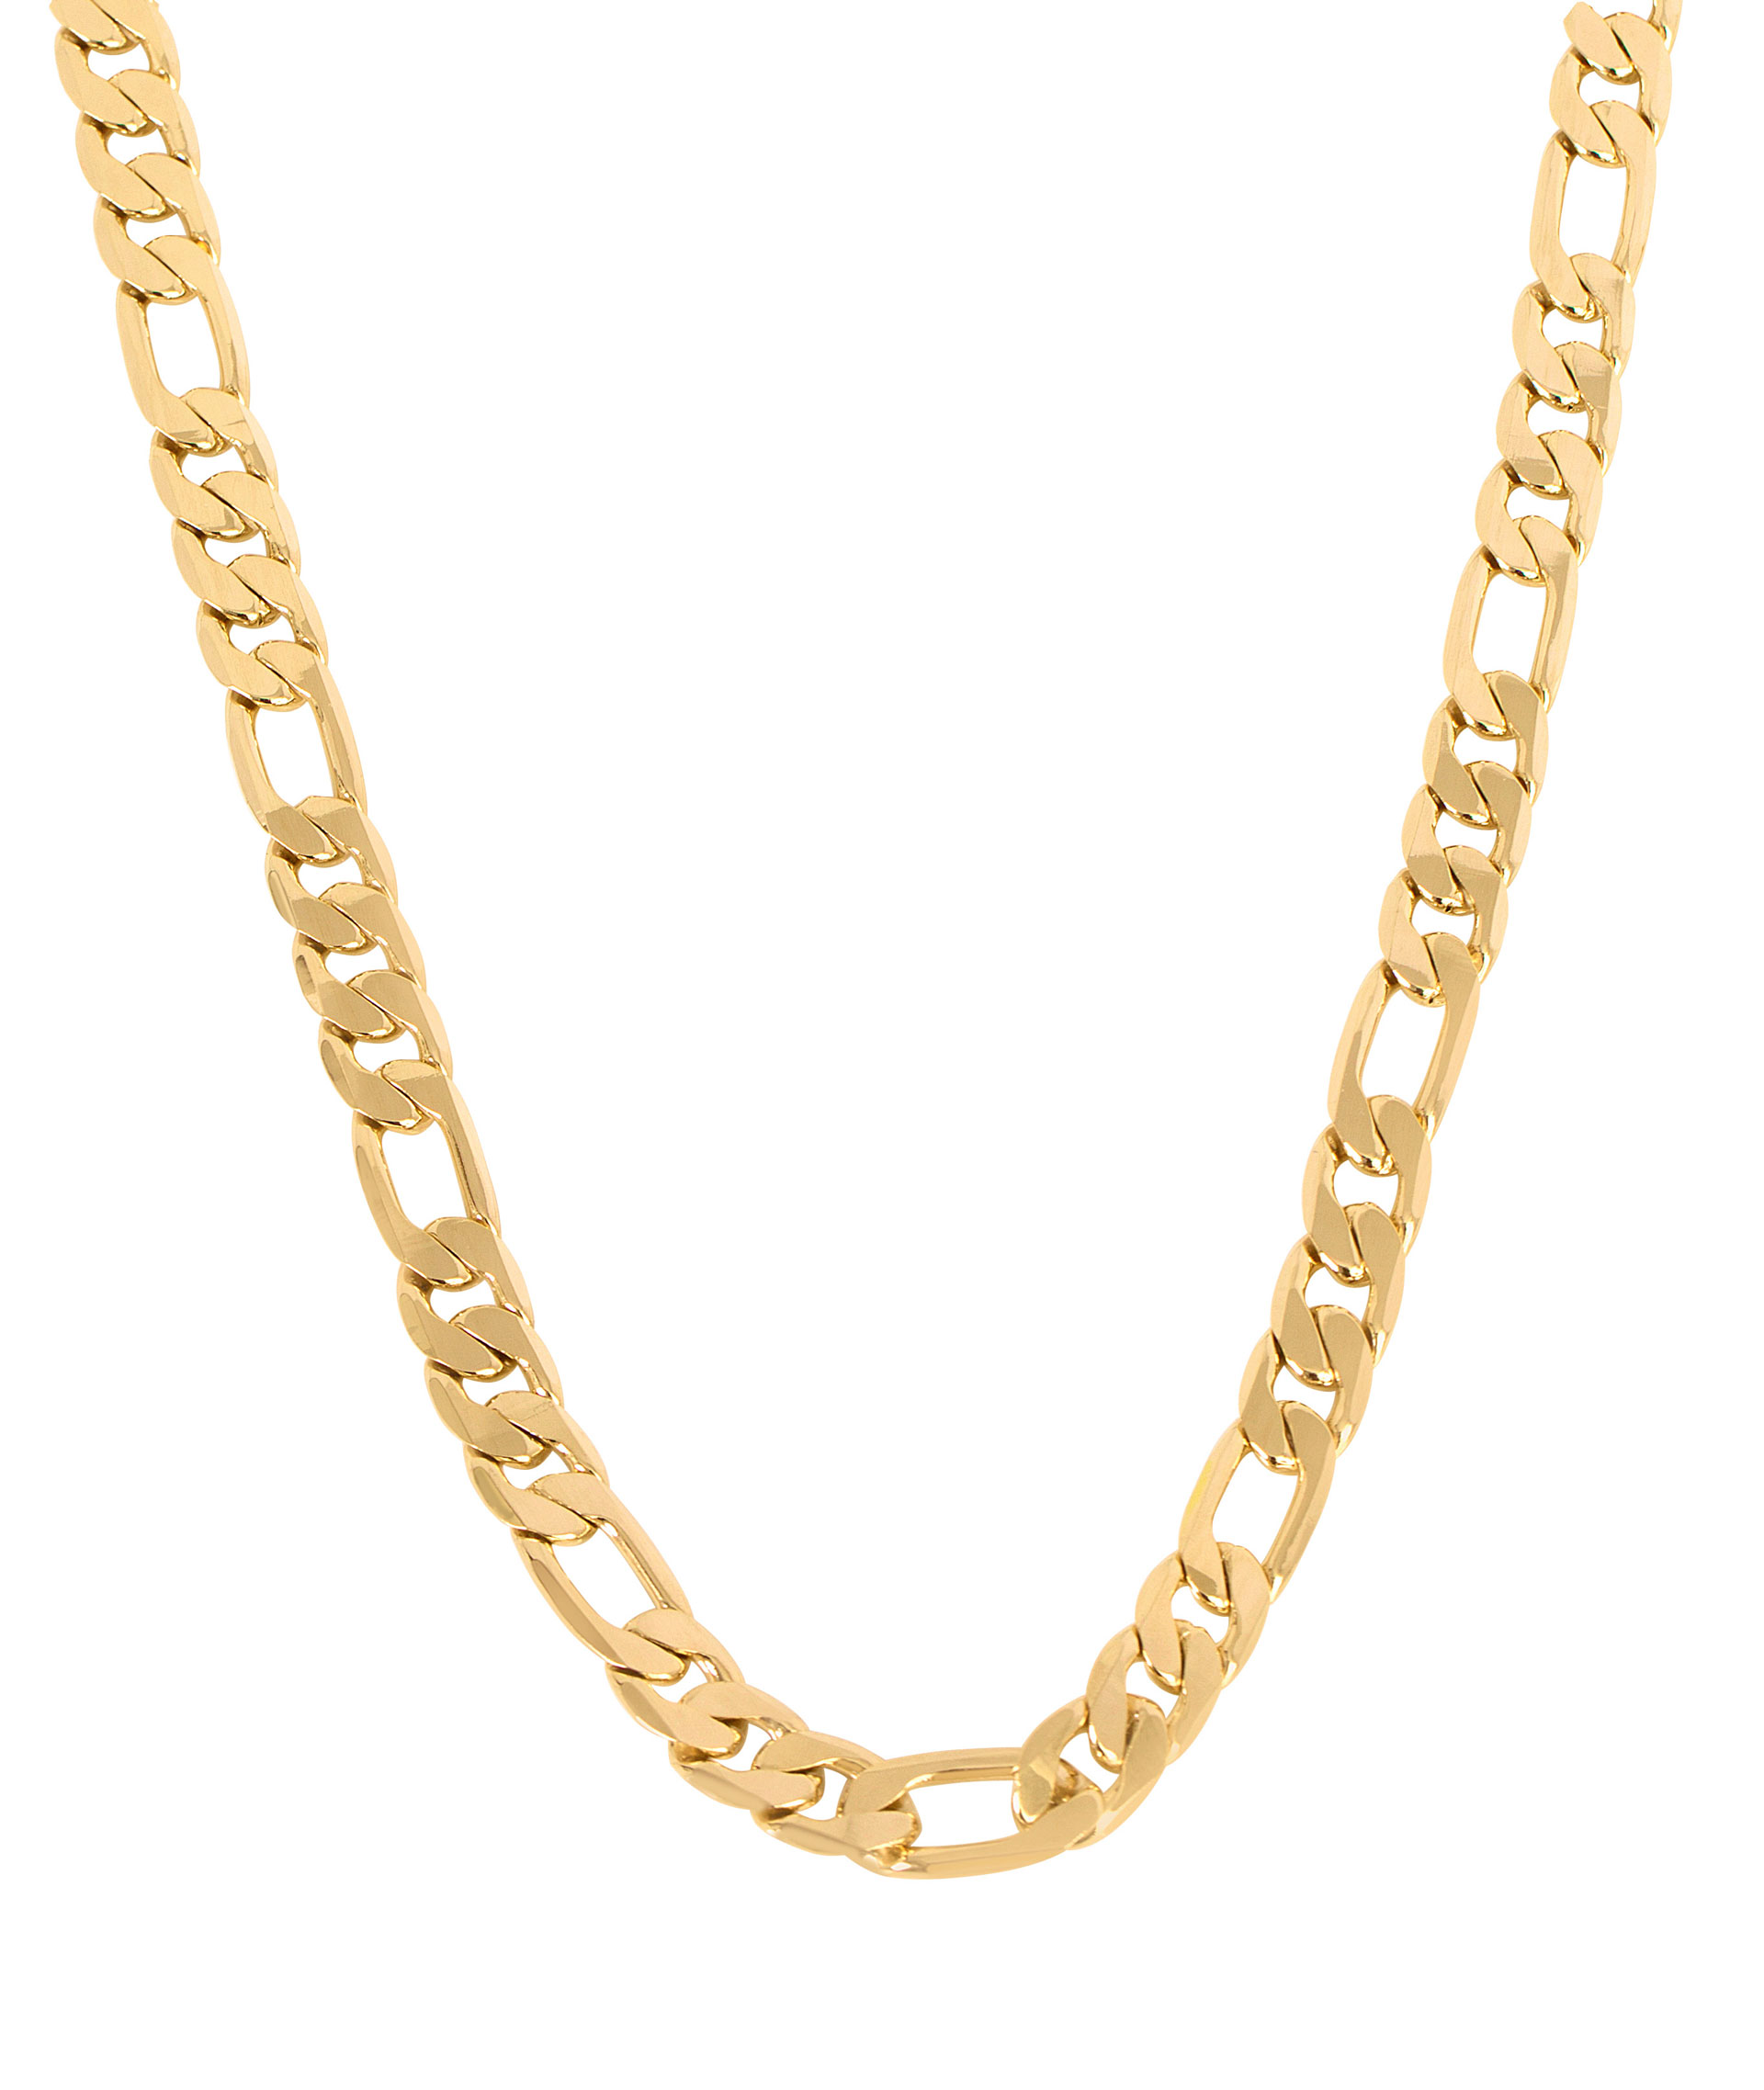 Hanging gold necklace